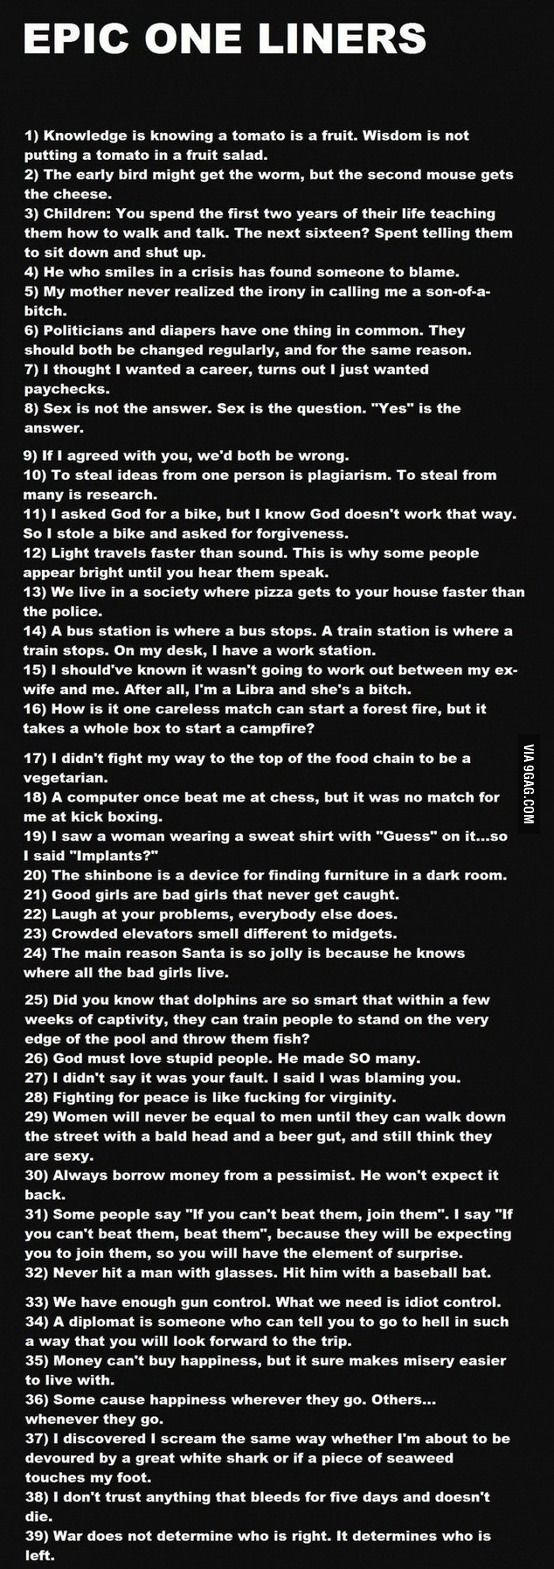 Epic one liners